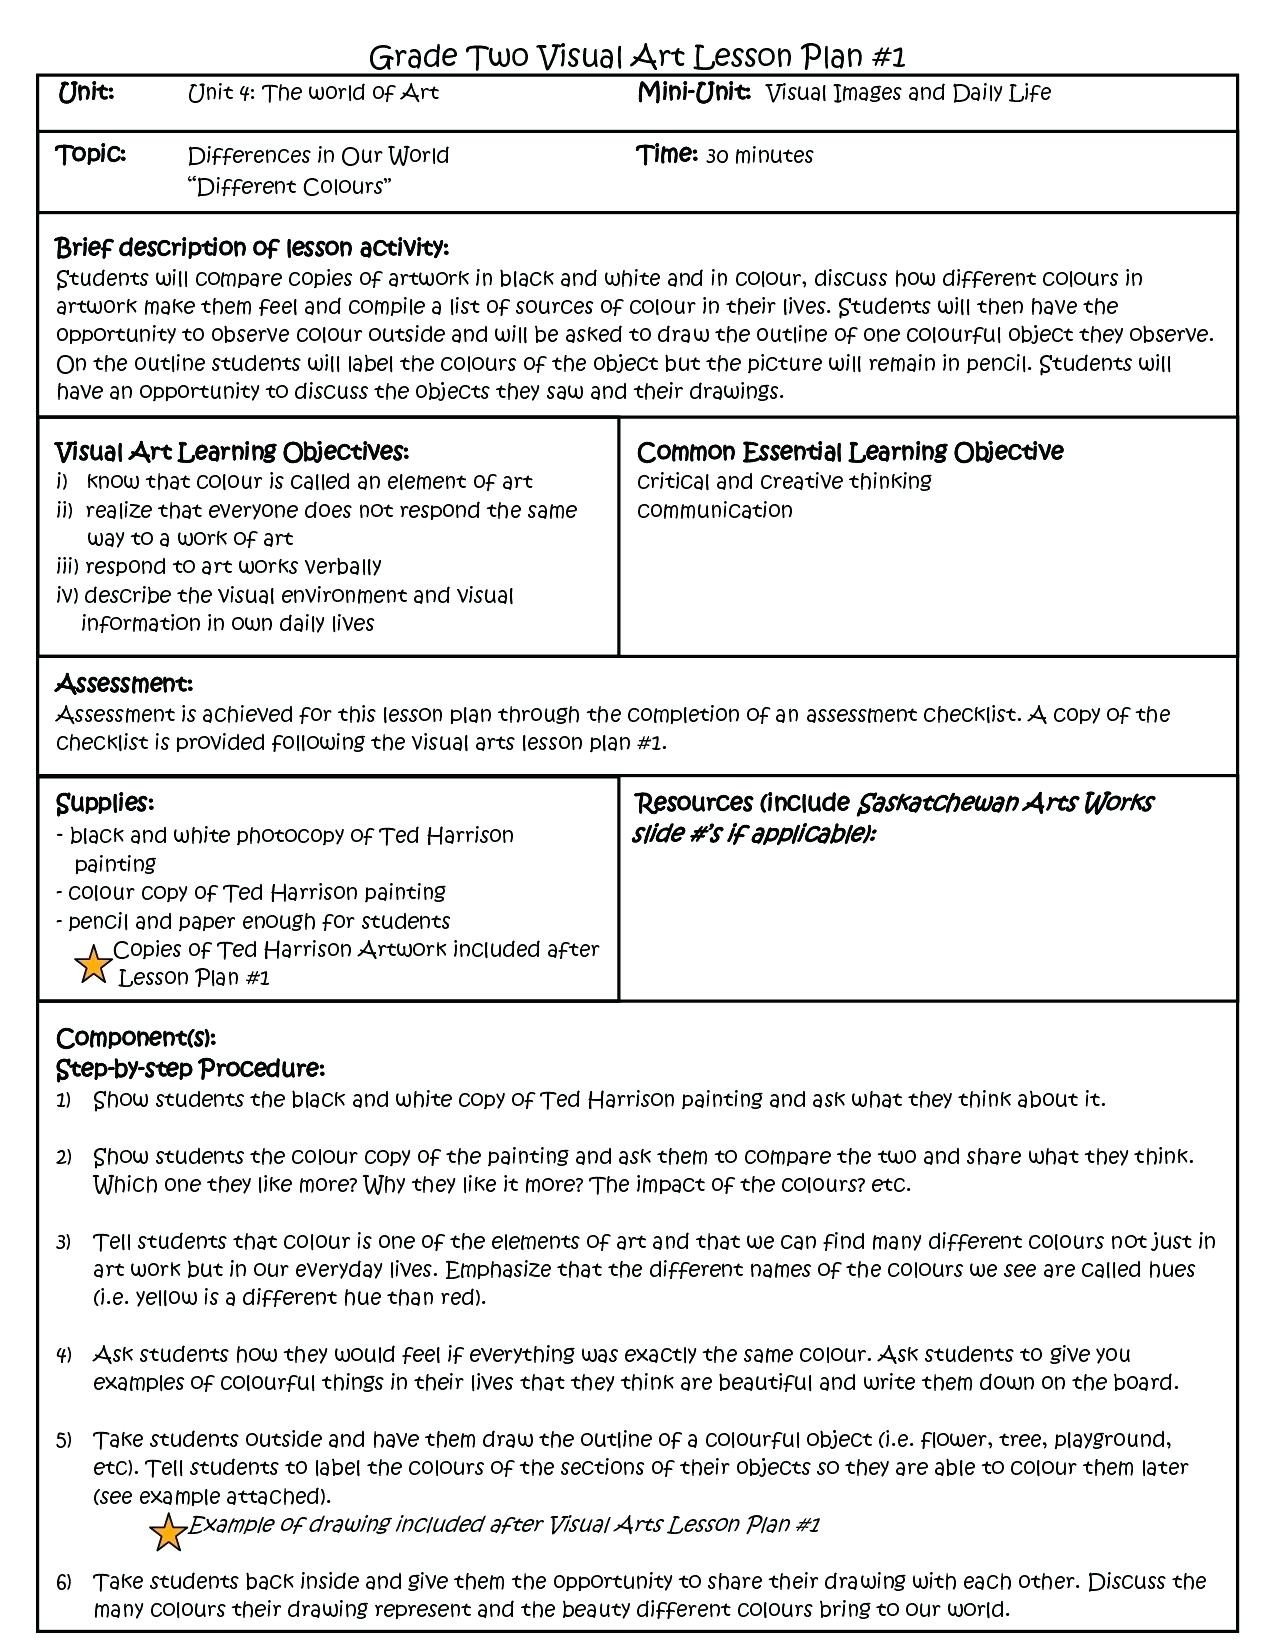 029 Pre K Assessment Forms Gallery Of Doe Lessonn Template - Free Printable Pre K Assessment Forms